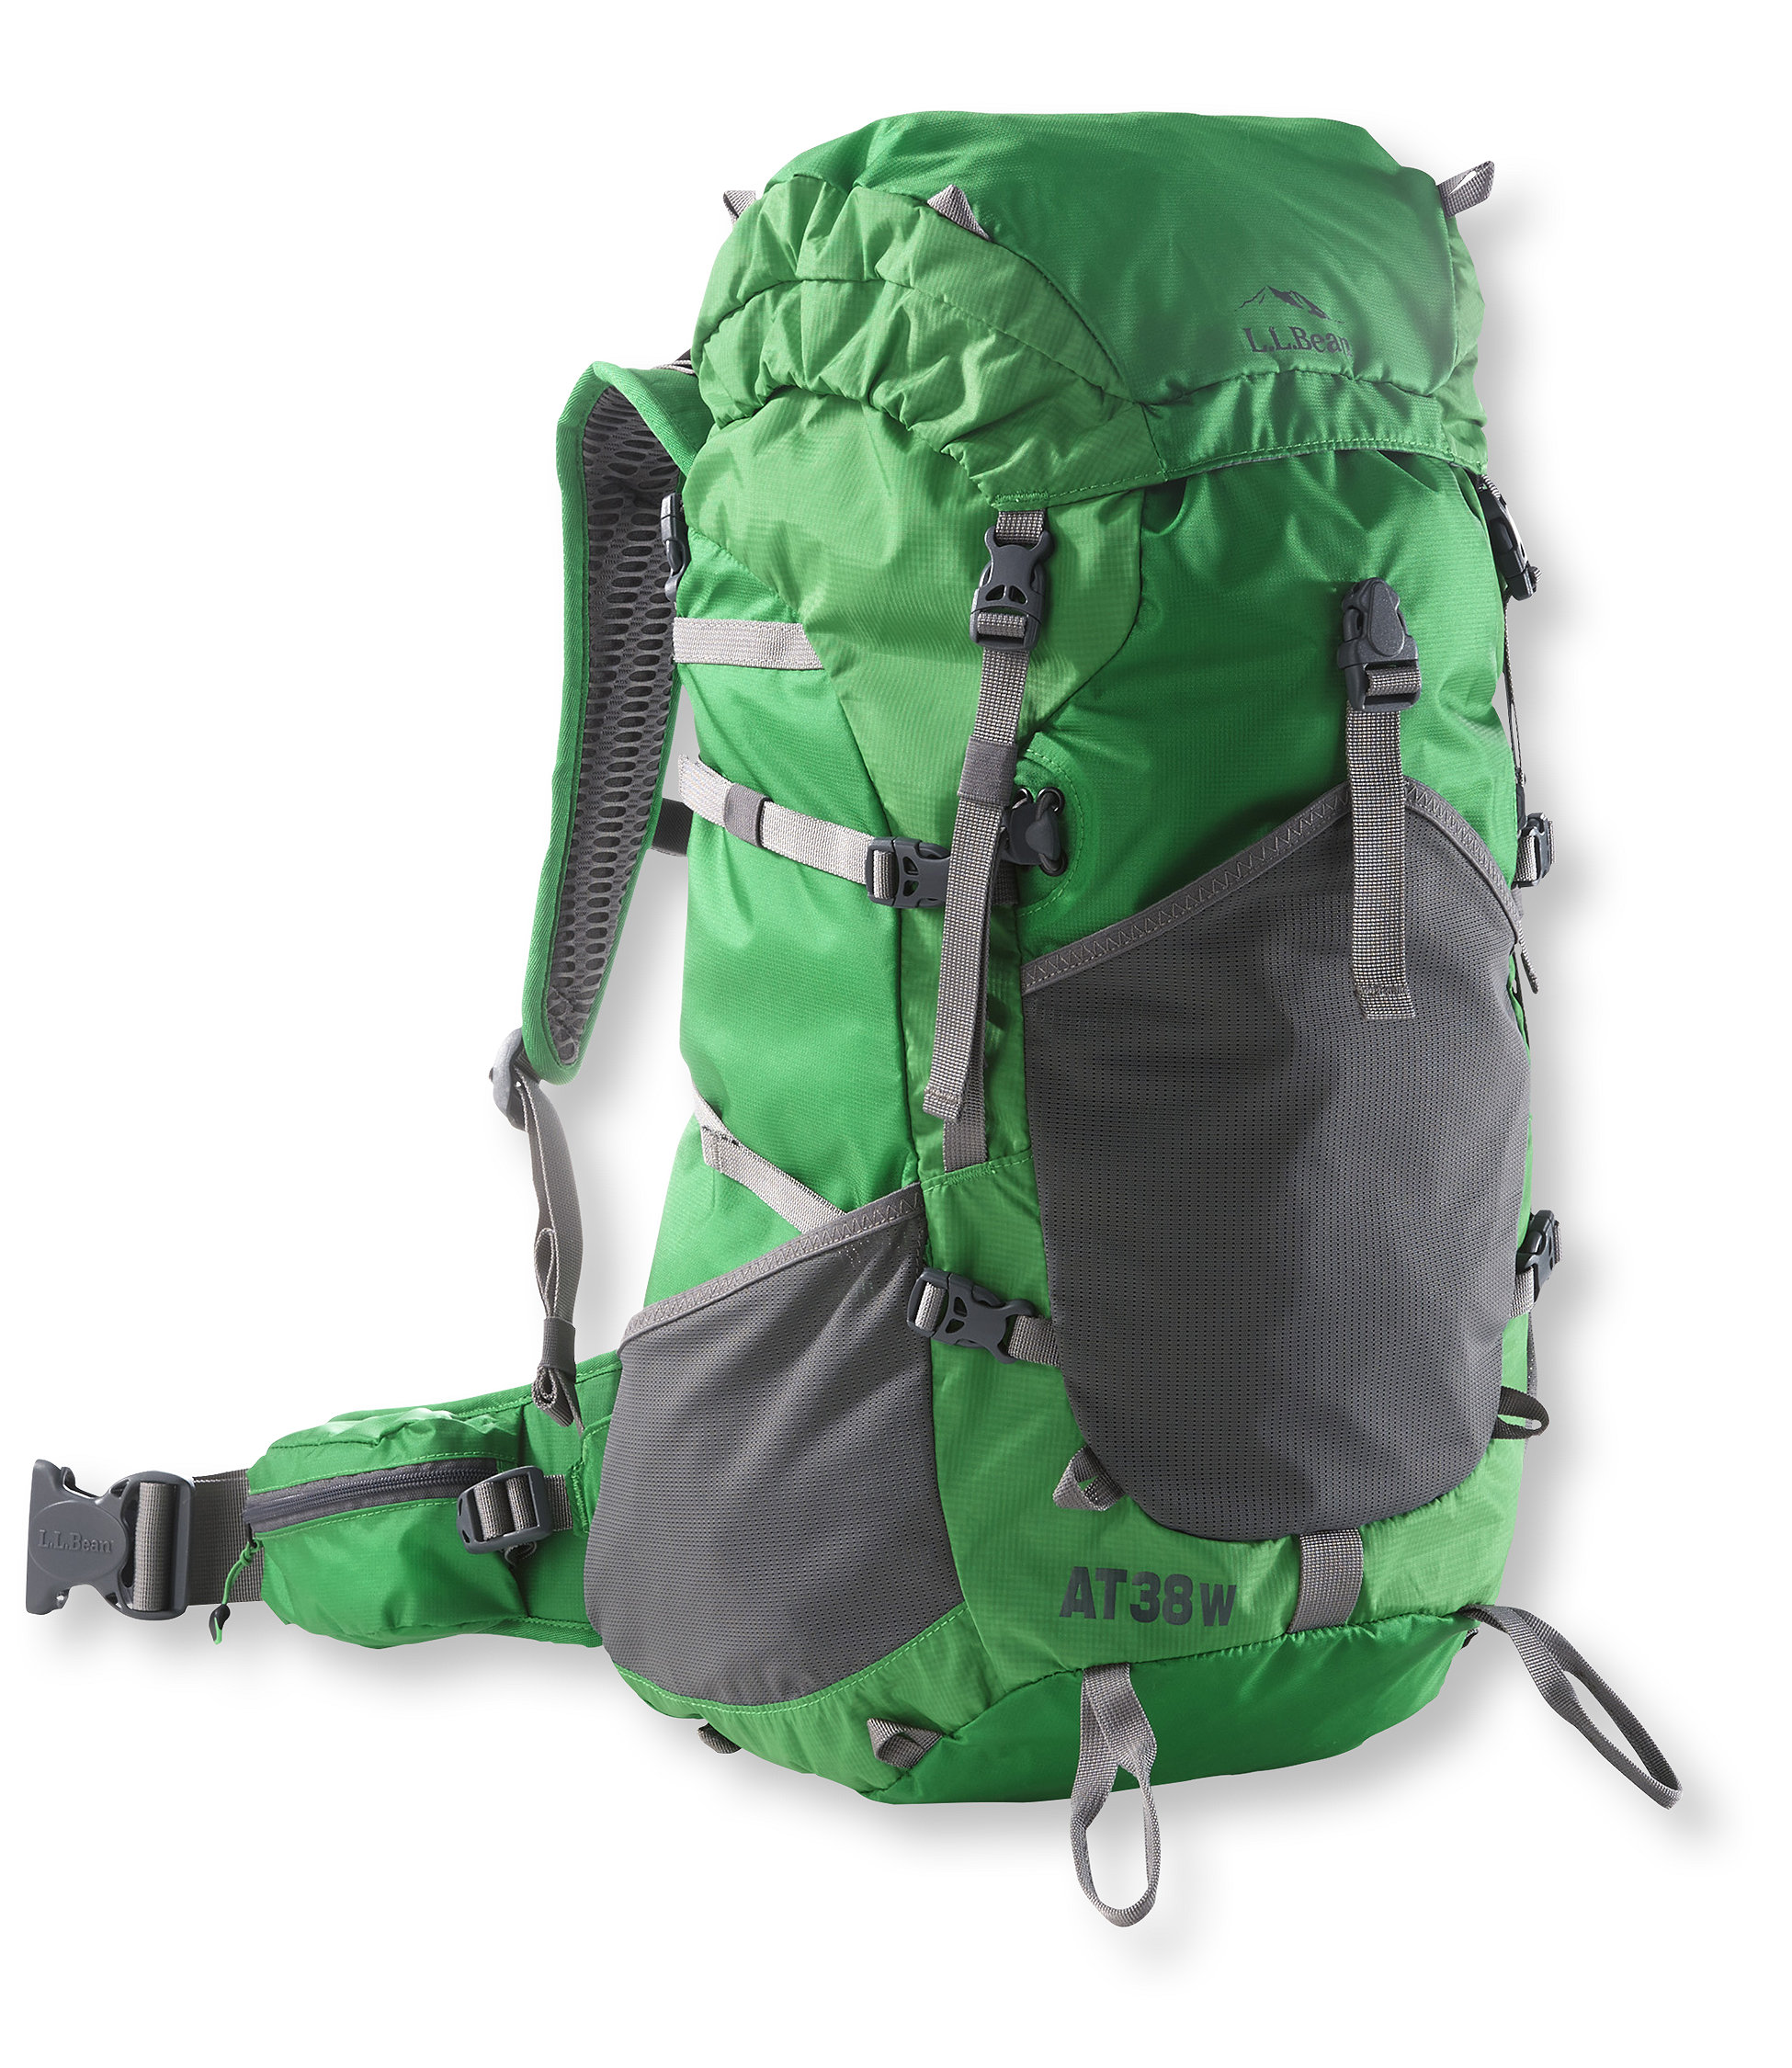 L.L.Bean AT 38 Day Pack